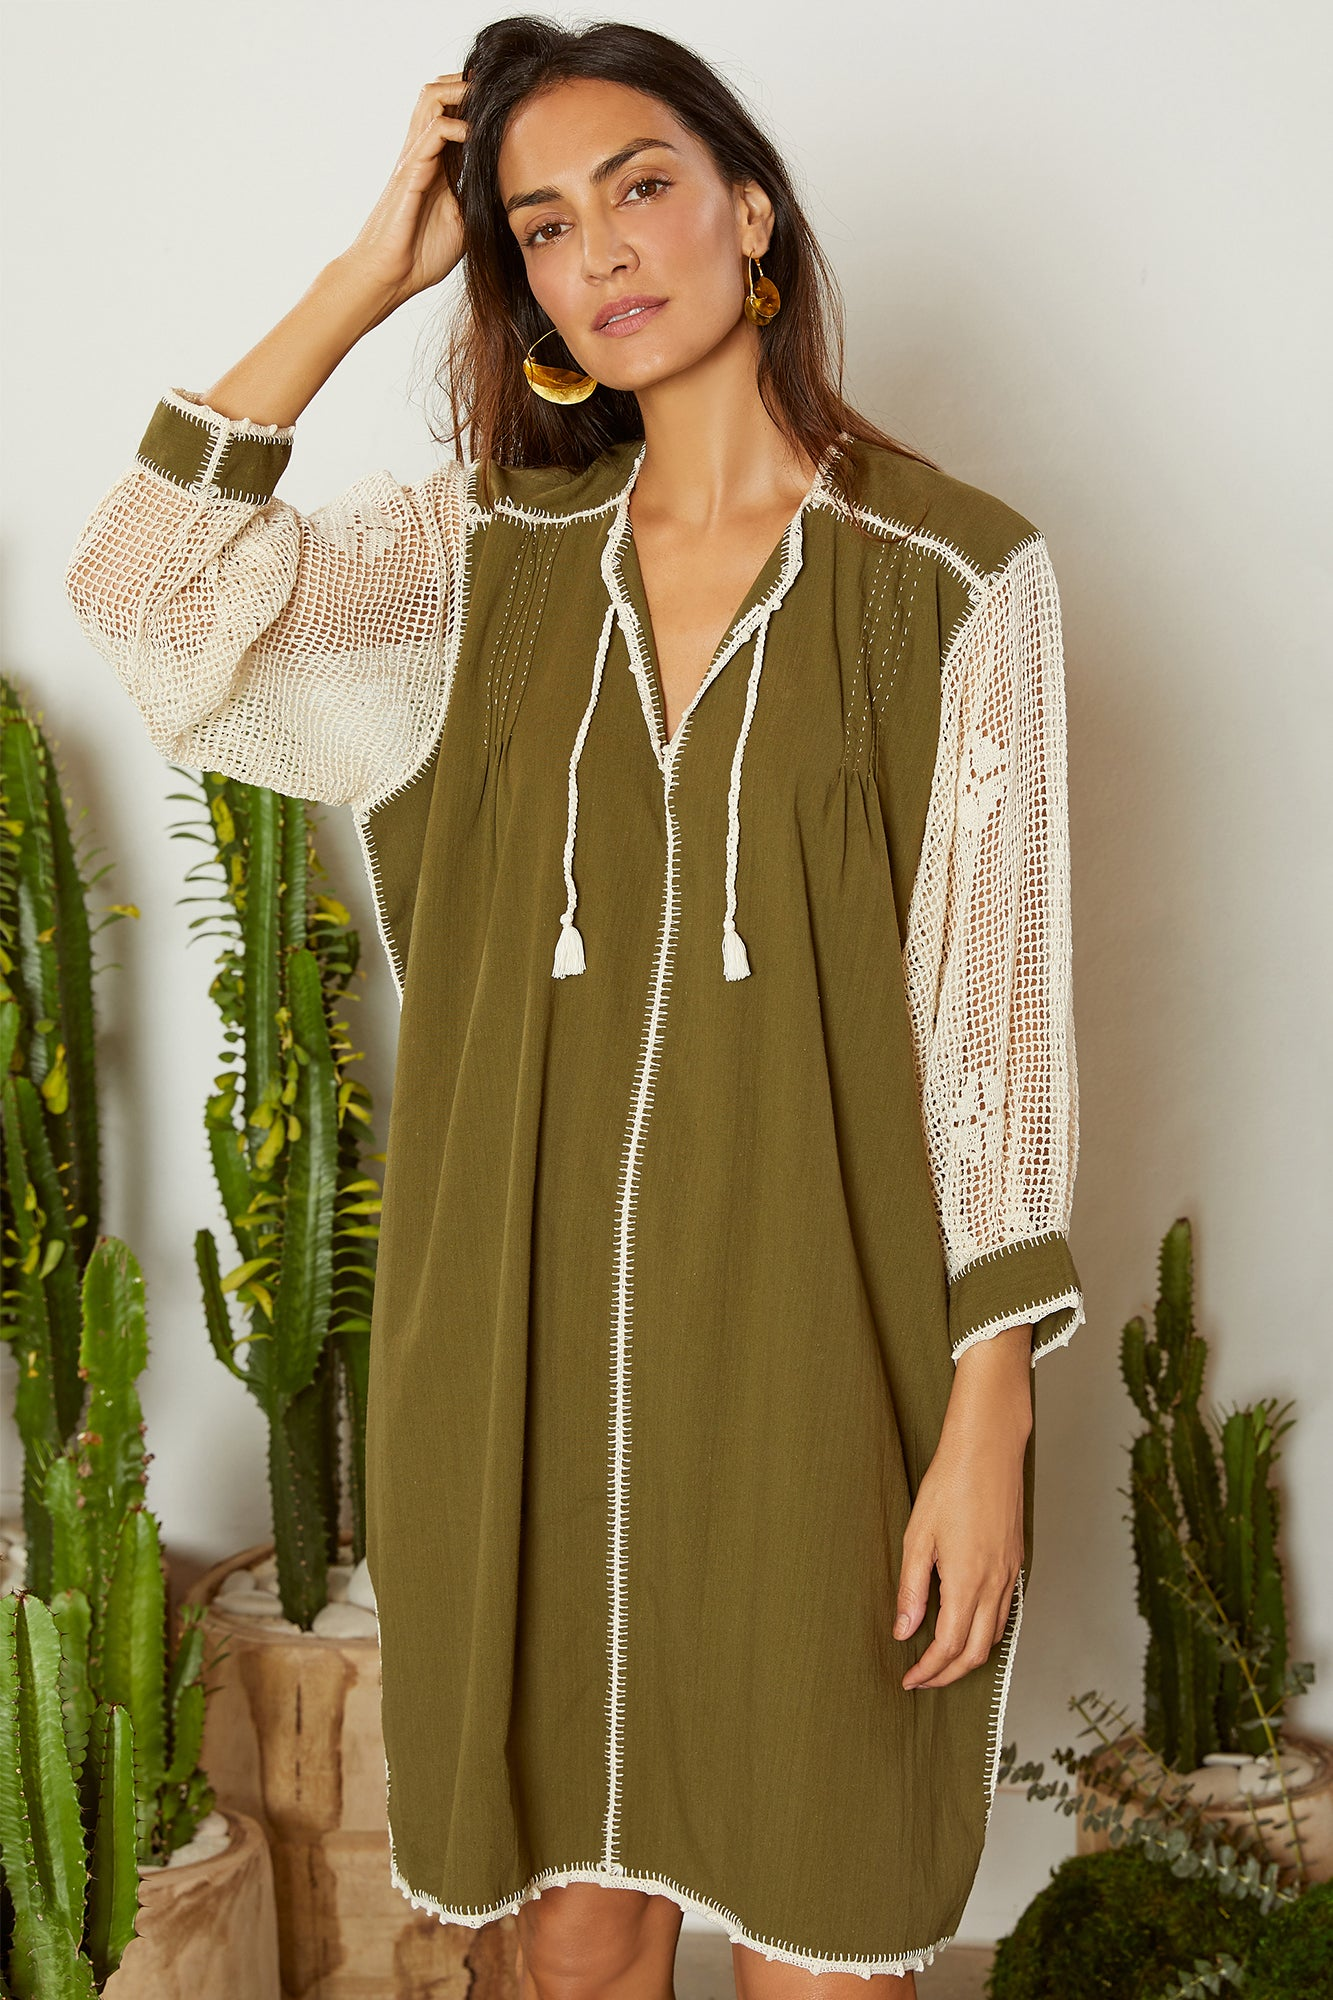 Carolina K San Juan Dress Olive Green